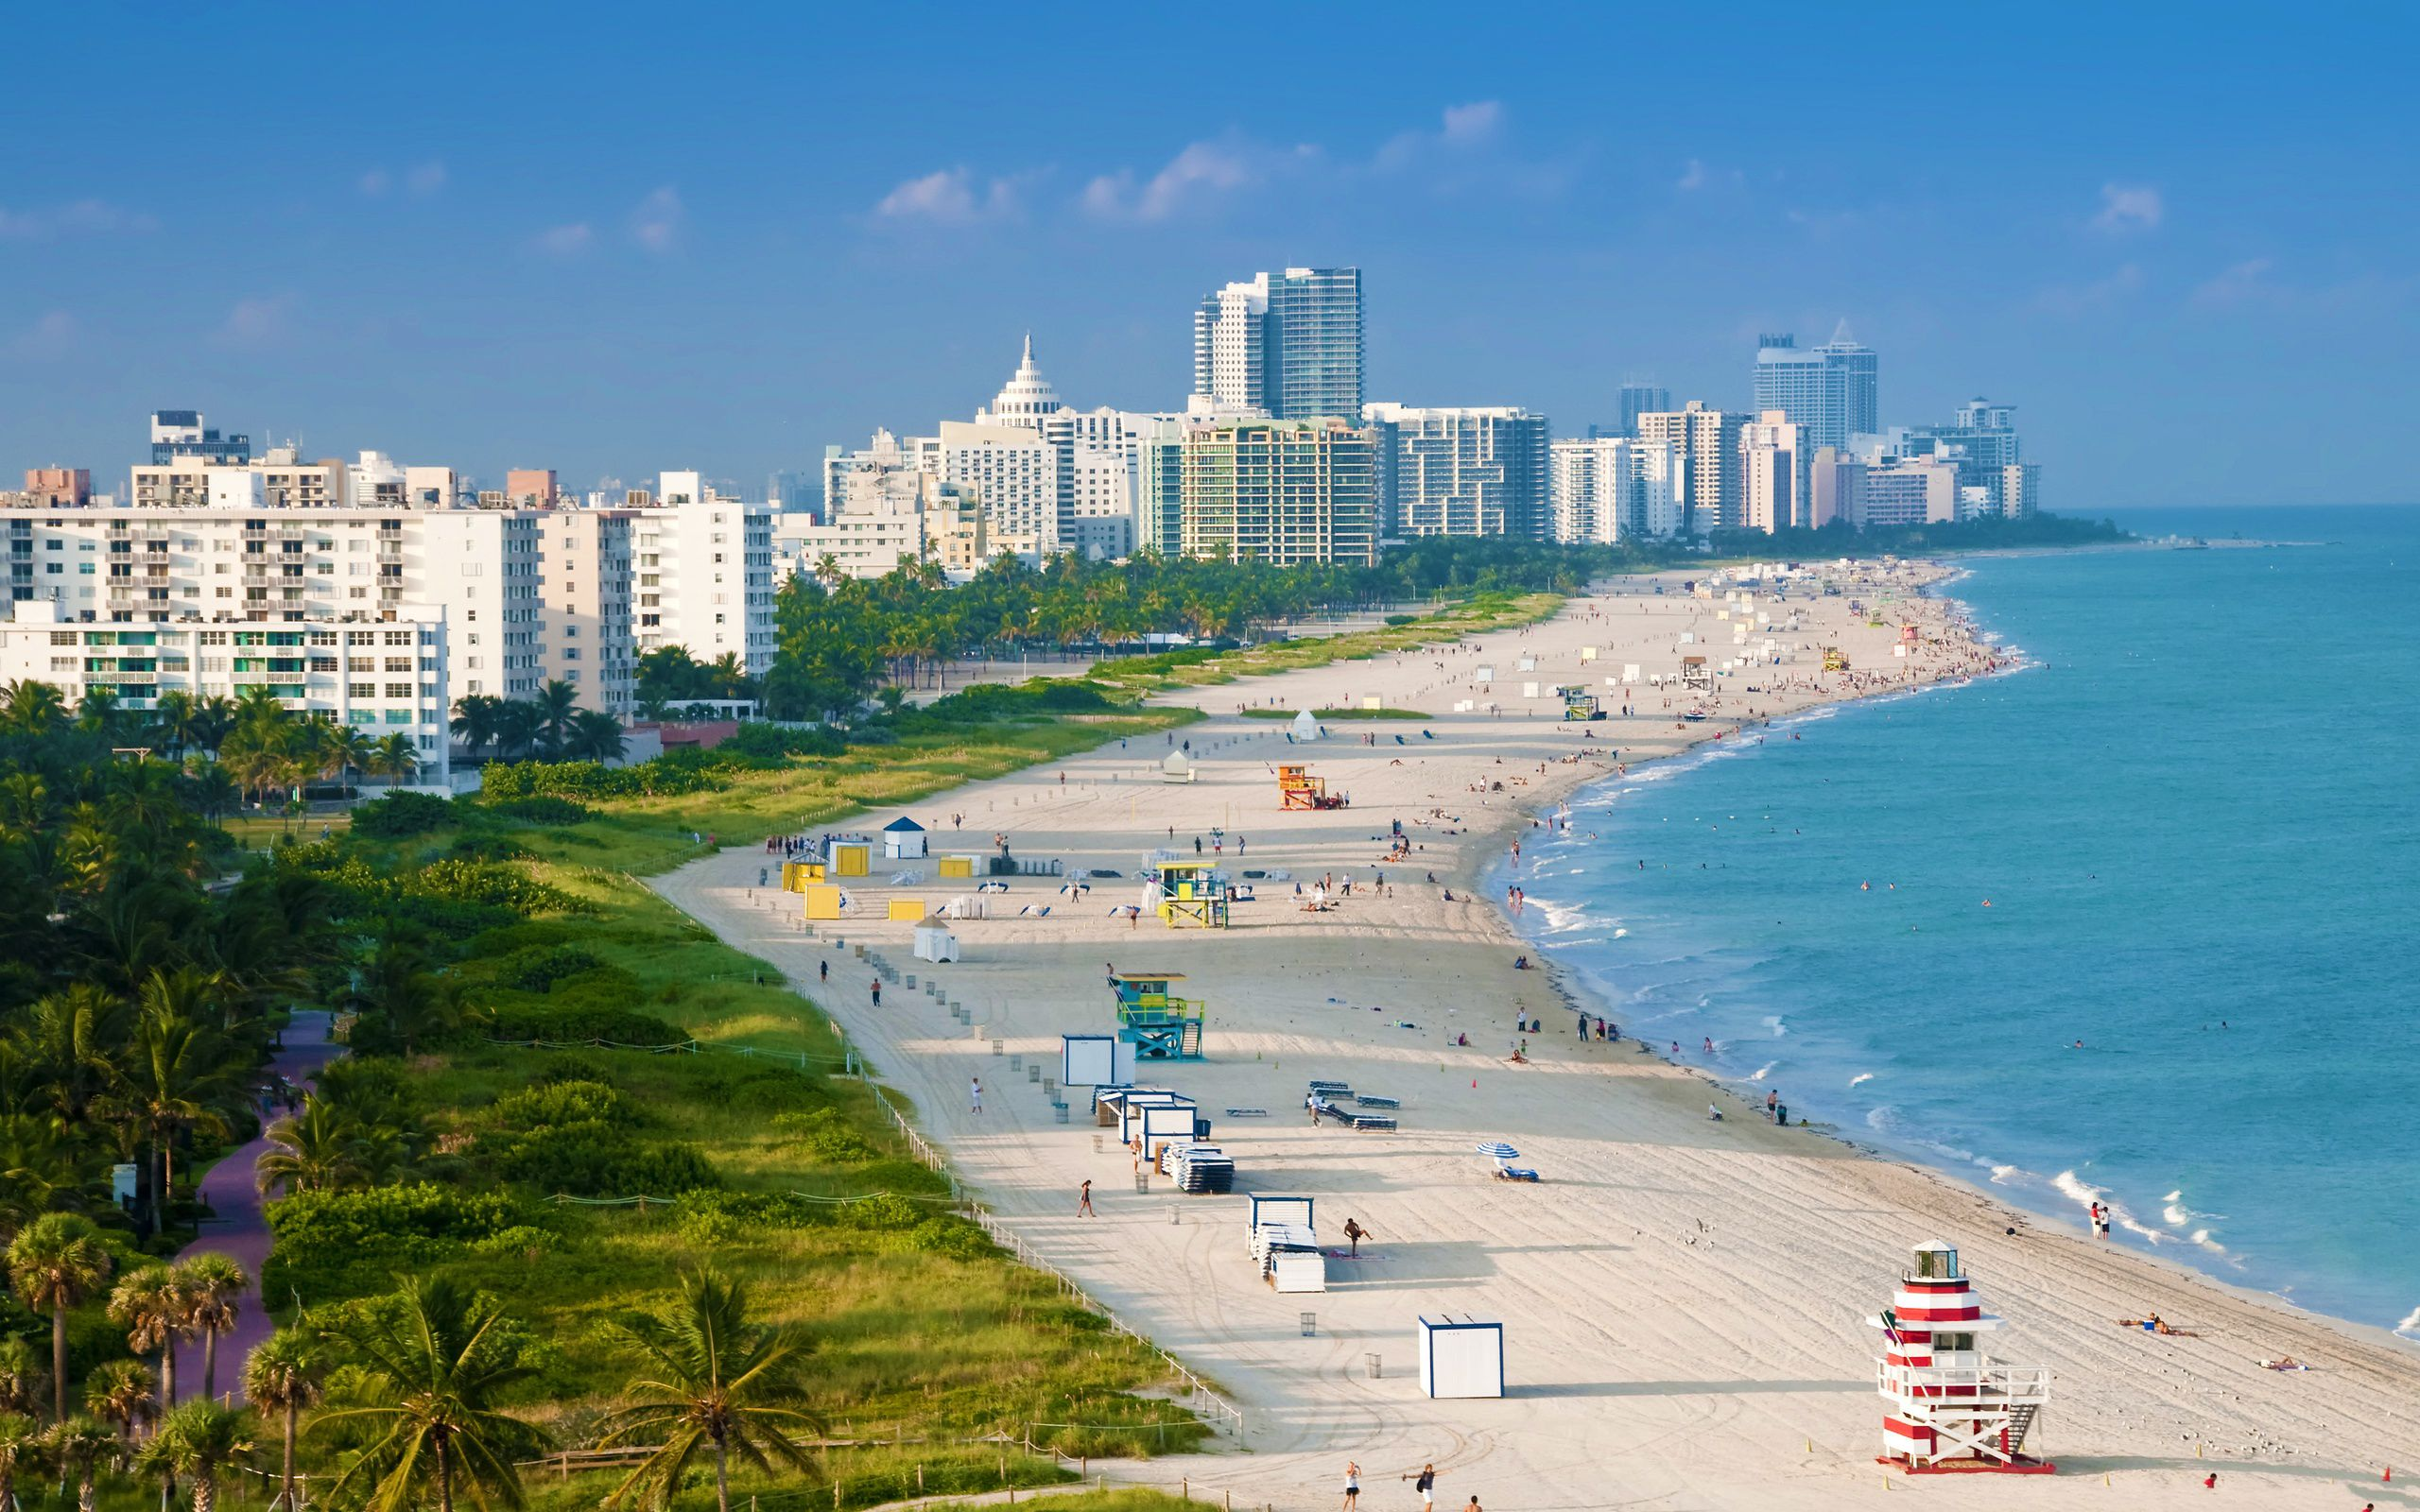 At the shore in Miami Beach, visitors can swim, surf and jet ski in the warm and crystal-clear Atlantic waters. You can also nap on the white sands, work on a tan or simply watch the beautiful people, especially at South Beach, a favorite of models and celebrities.